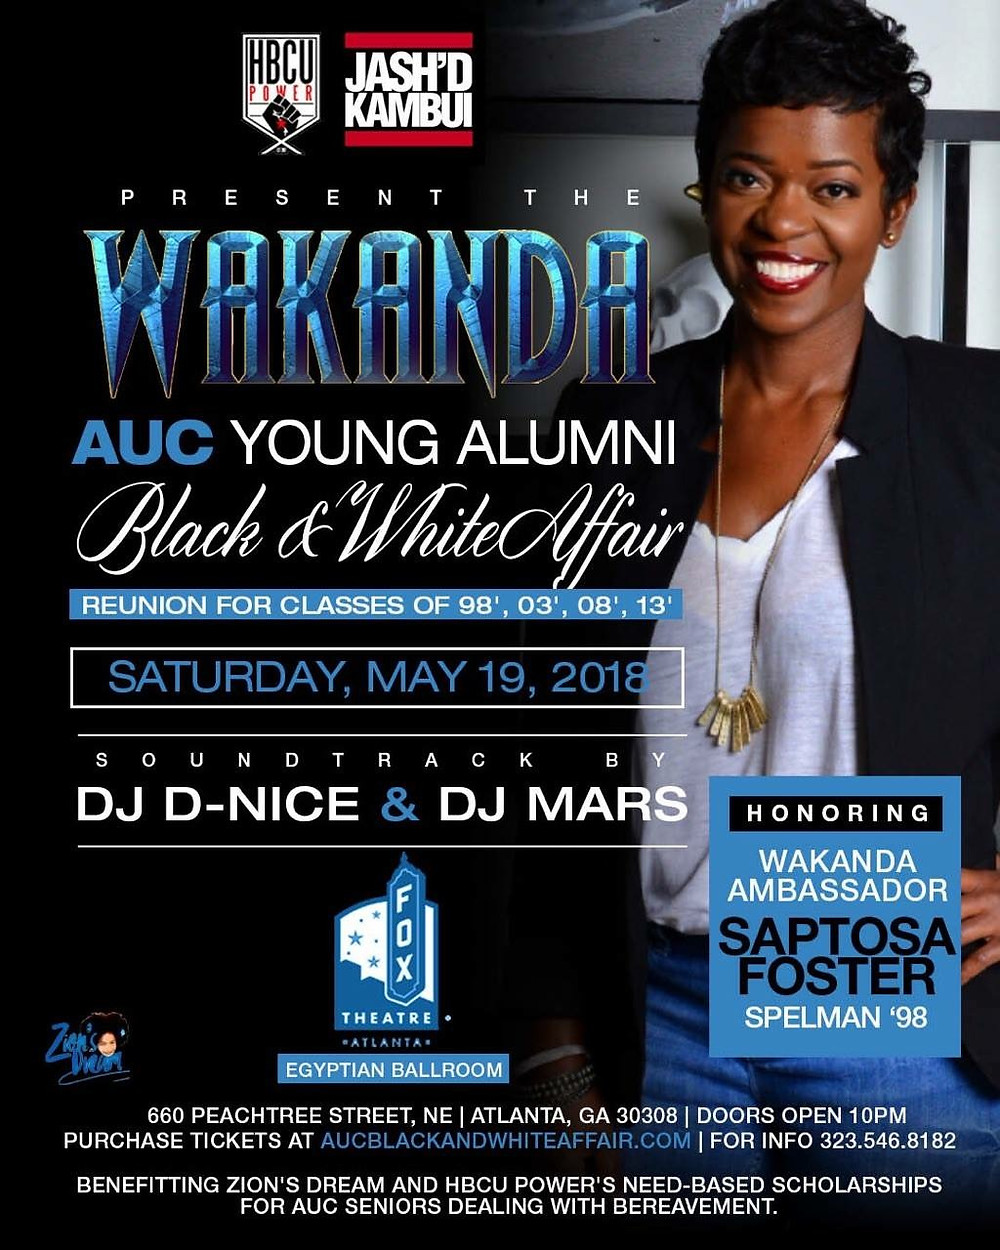 Join Us Reunion Weekend for the AUC Young Alumni Black & White Affair - May 19